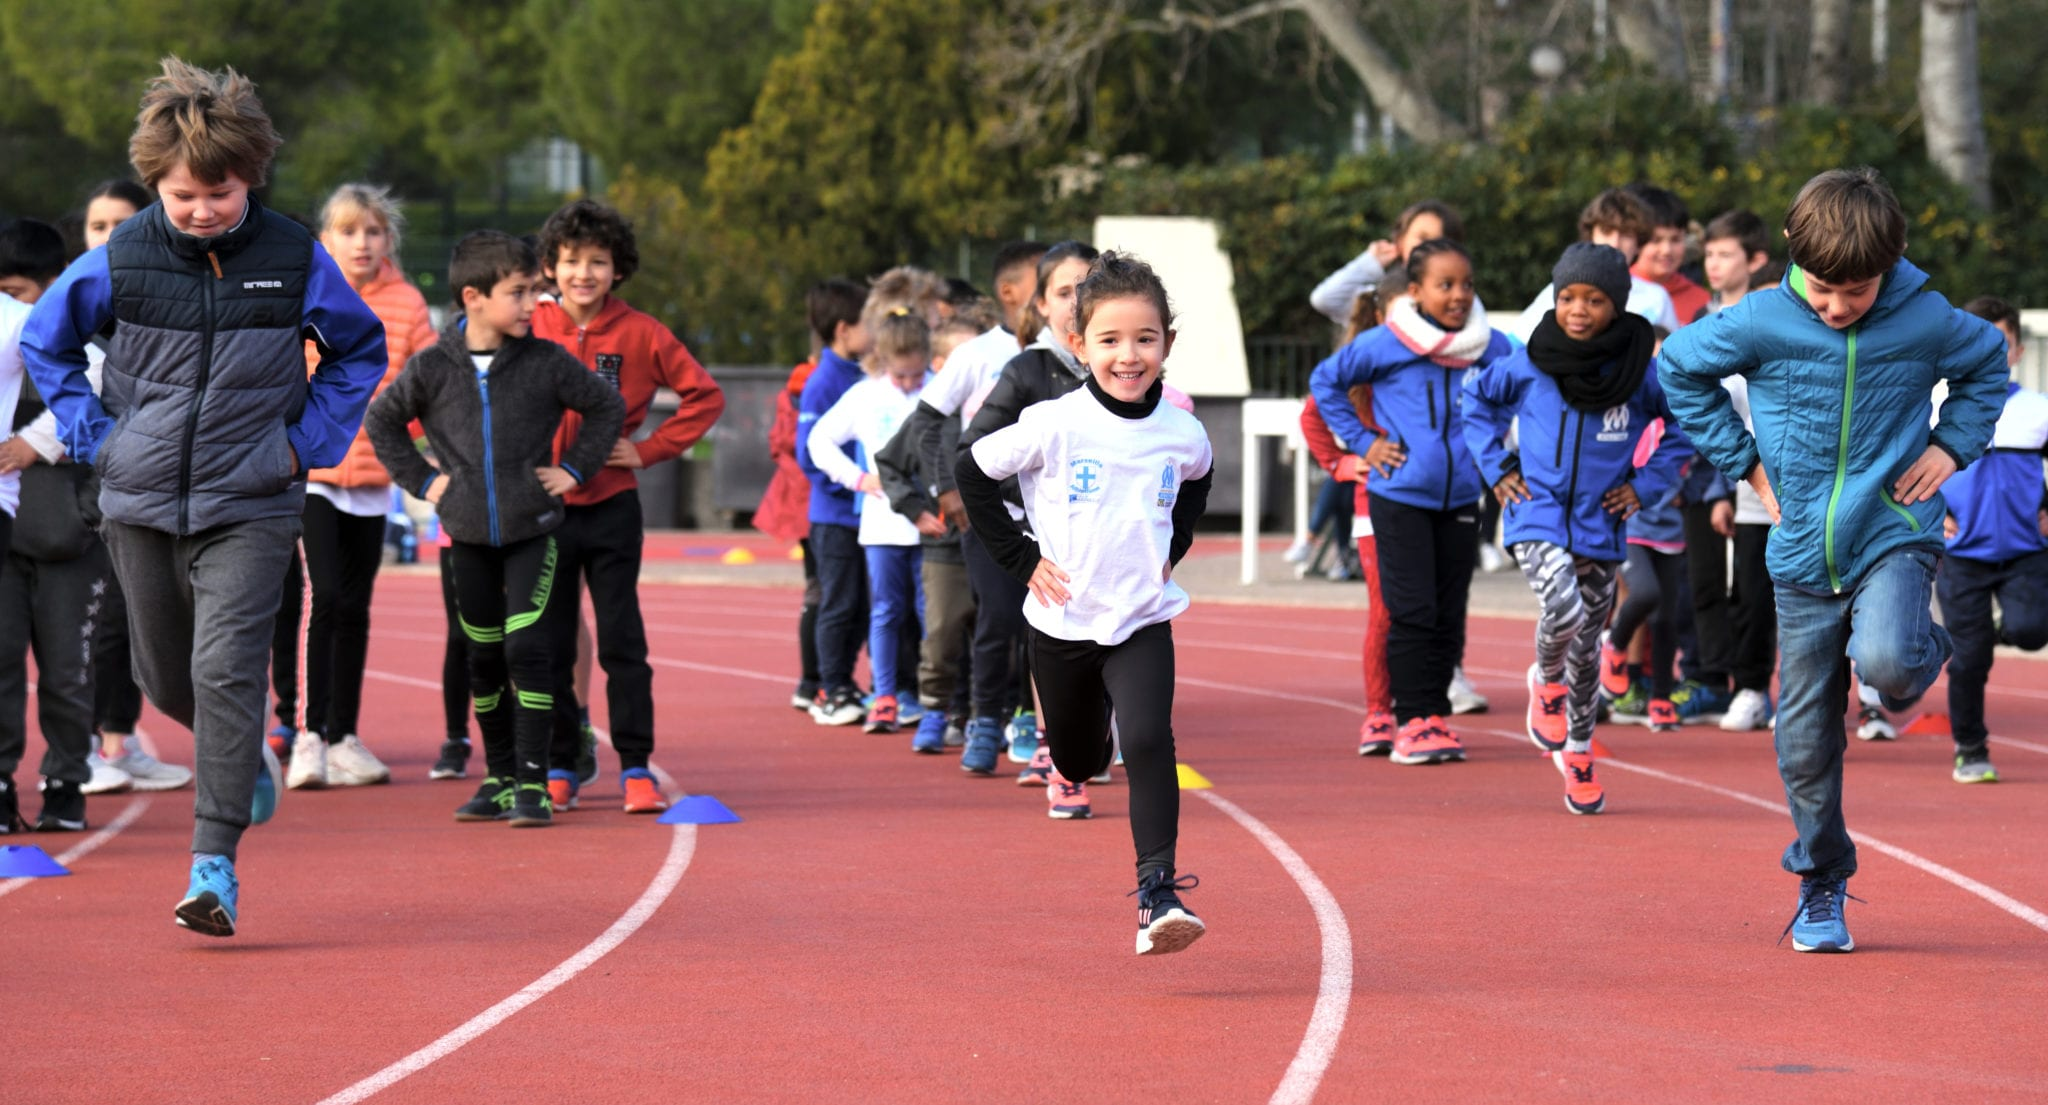 Ecole d'athletisme - enfants qui courrent